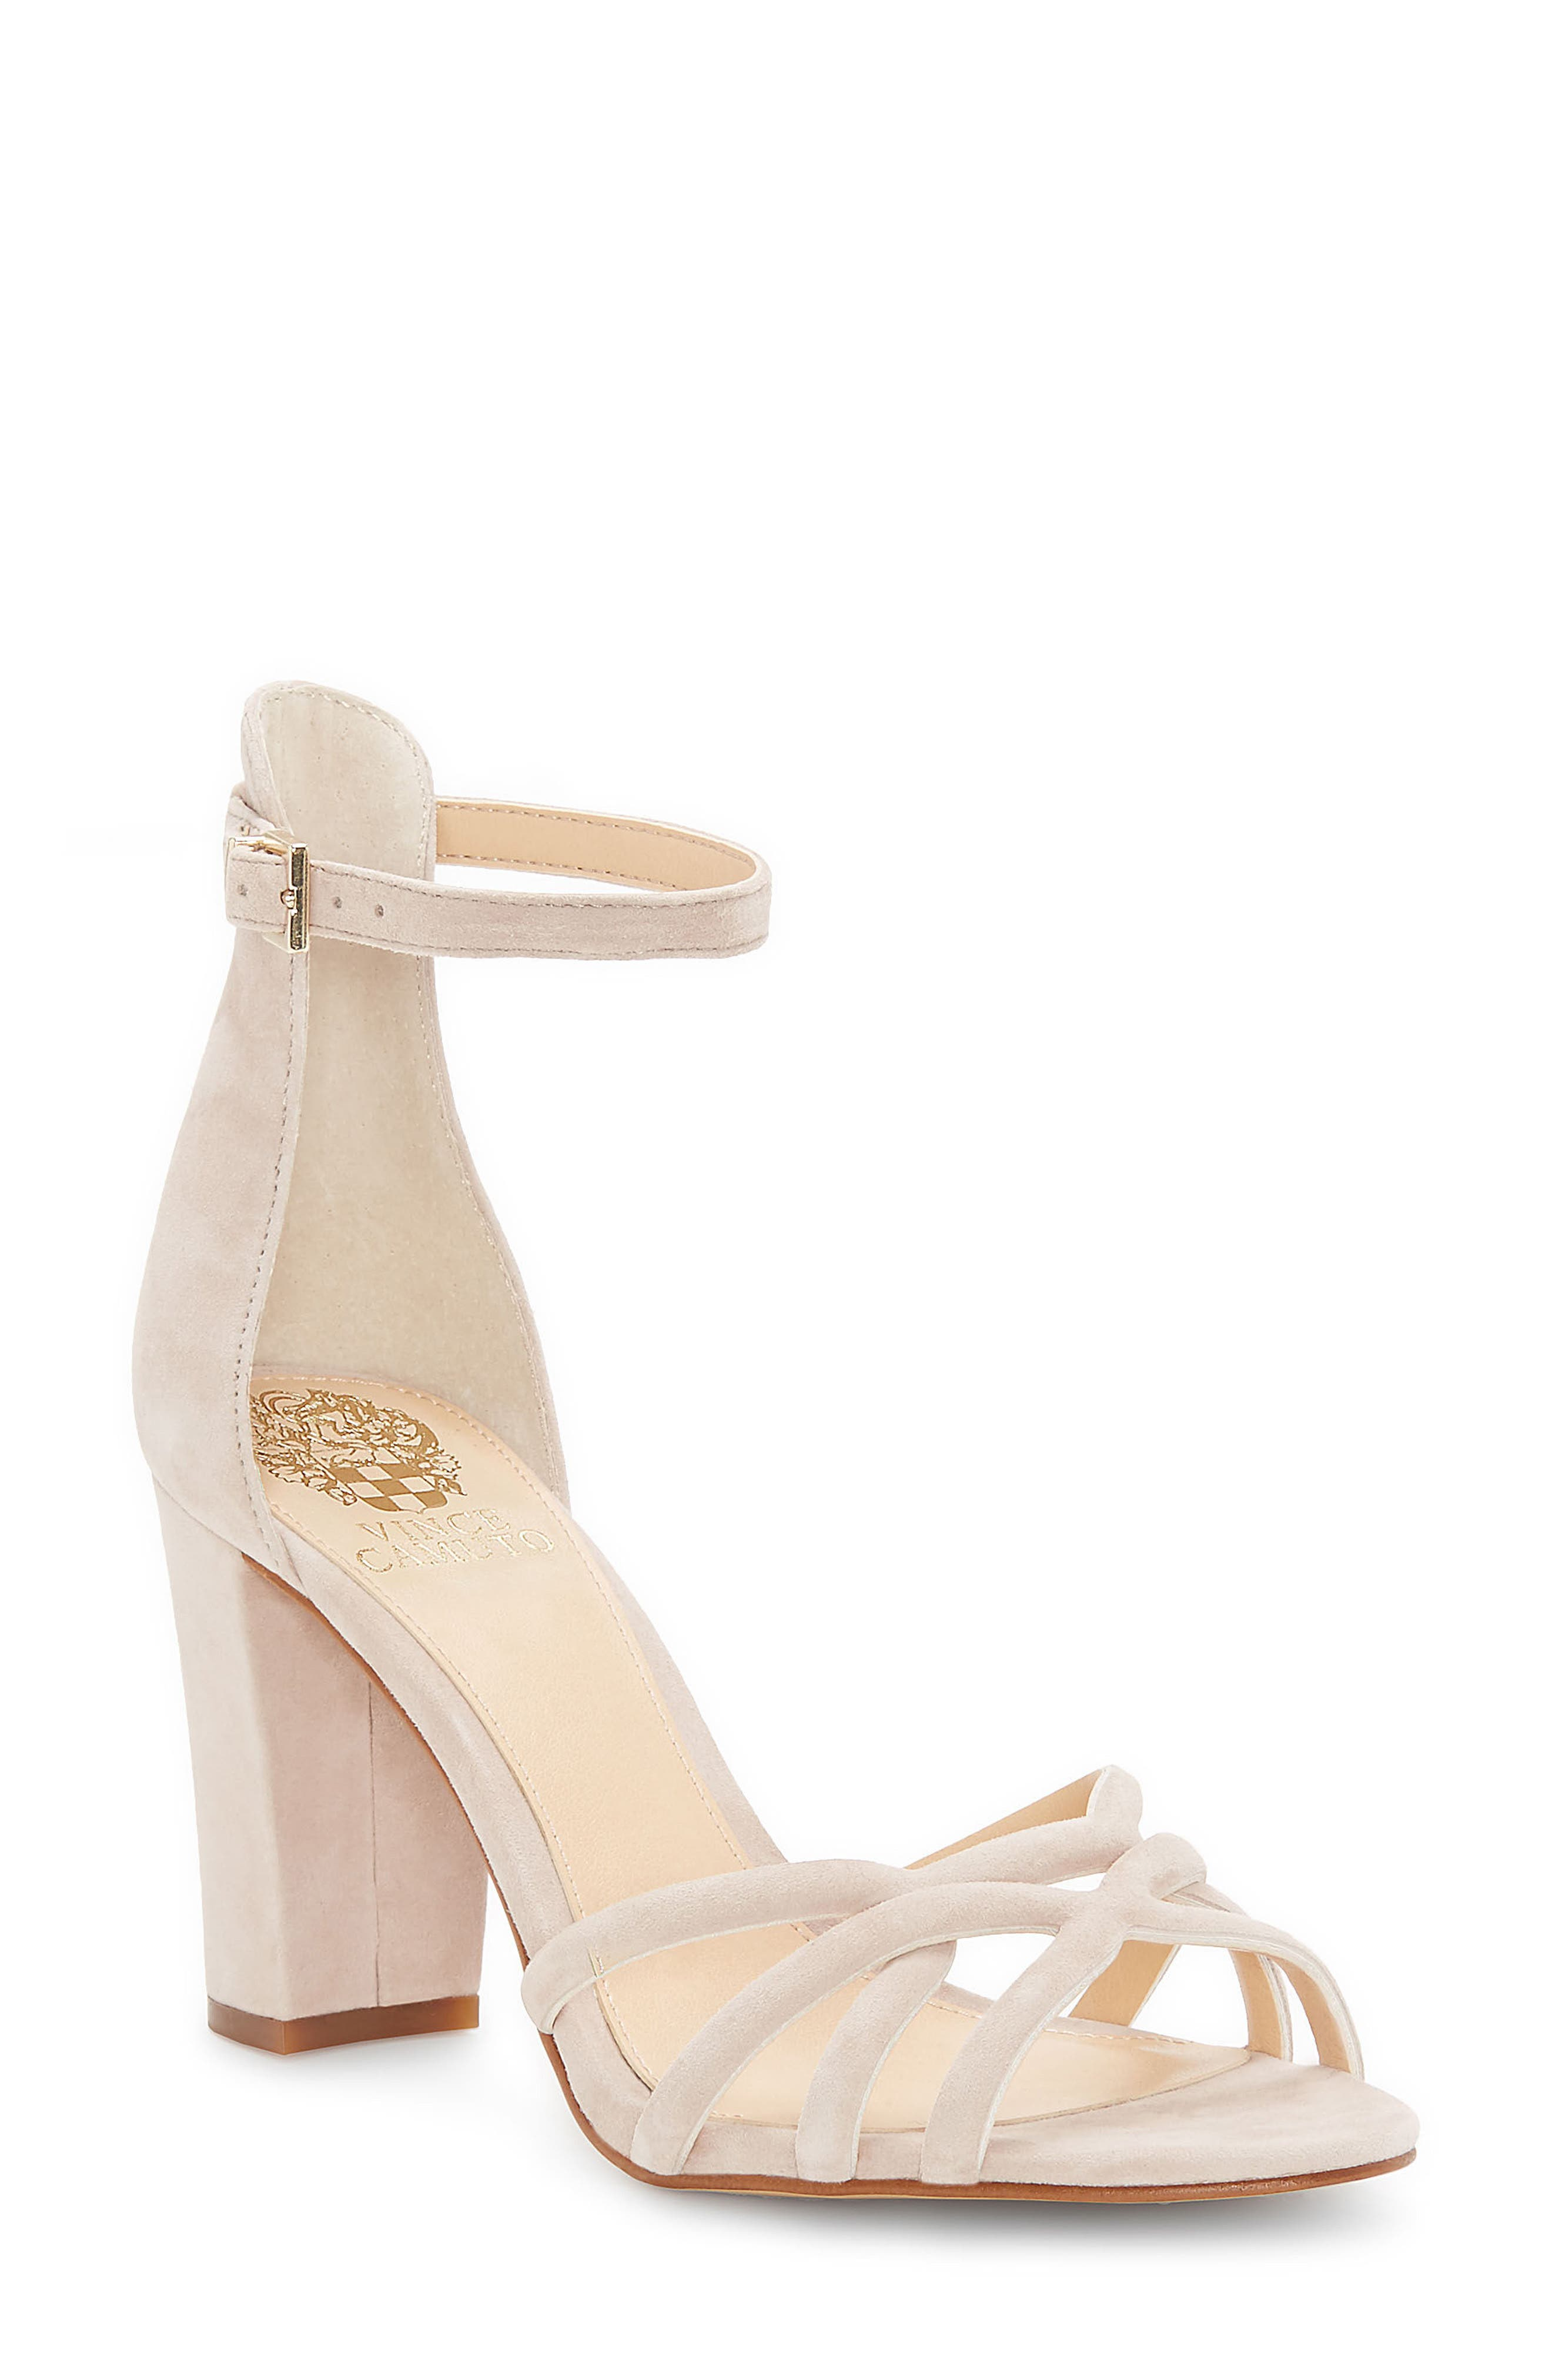 Catelia Ankle Strap Sandal,                             Main thumbnail 1, color,                             Taupe Suede